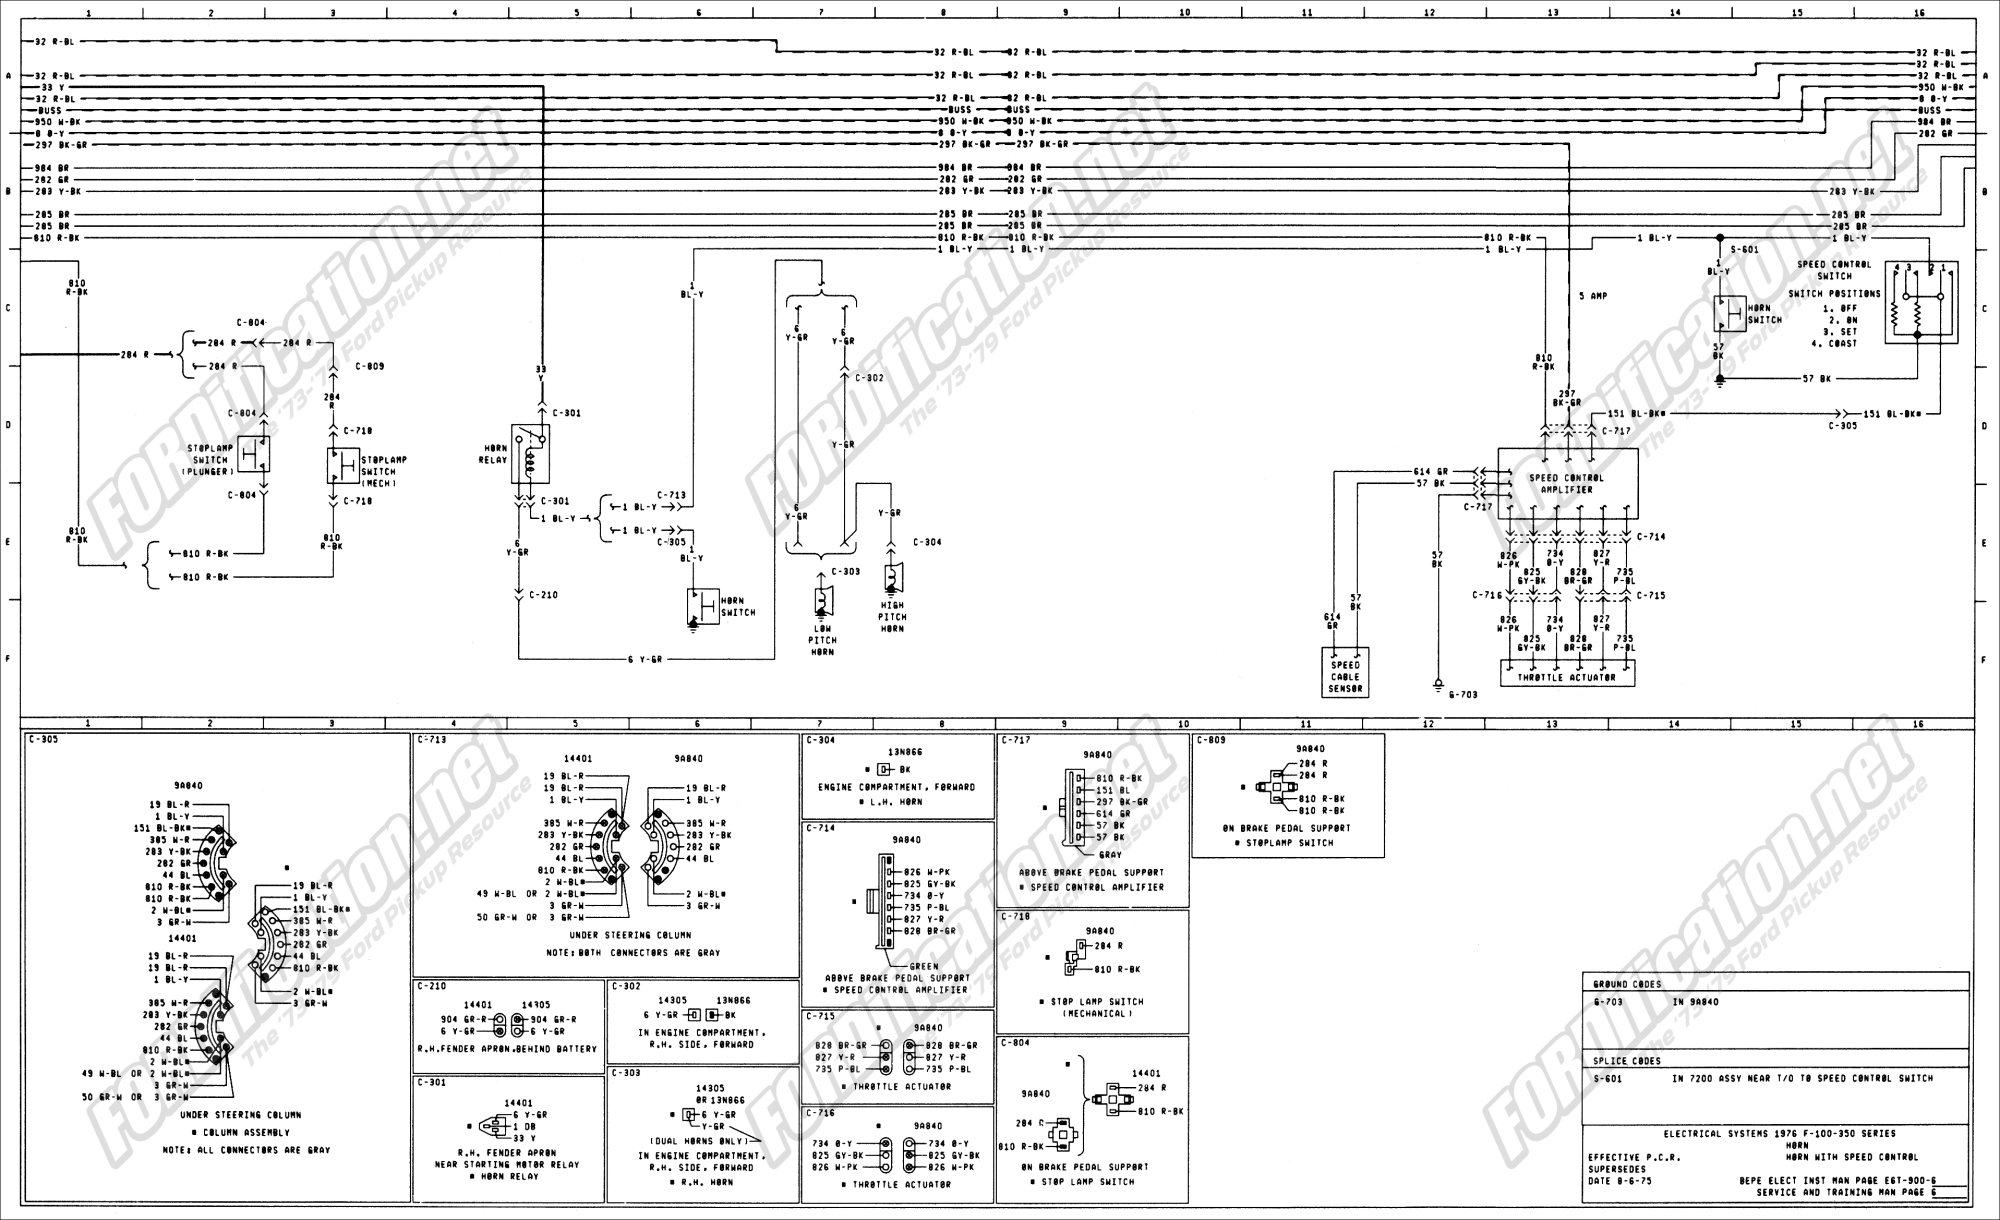 hight resolution of 1973 1979 ford truck wiring diagrams schematics fordification net 1977 bronco ignition wiring diagram 1977 bronco wiring diagram